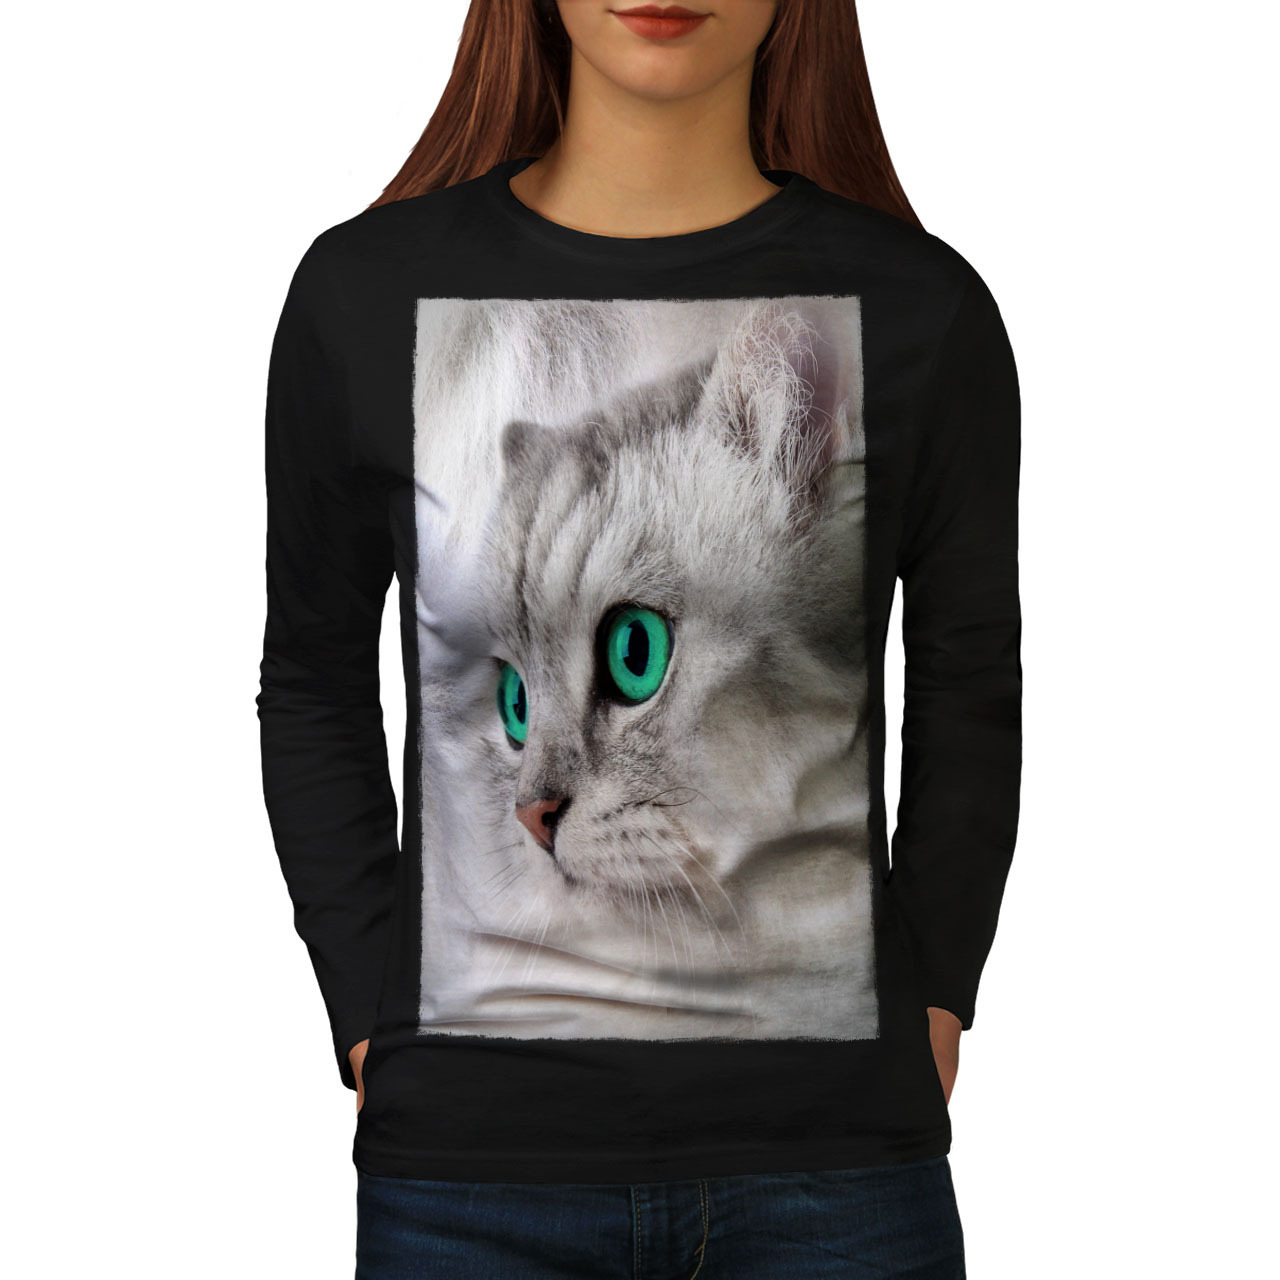 Primary image for Pet Cute Kitten Furry Cat Tee Cat Face Women Long Sleeve T-shirt